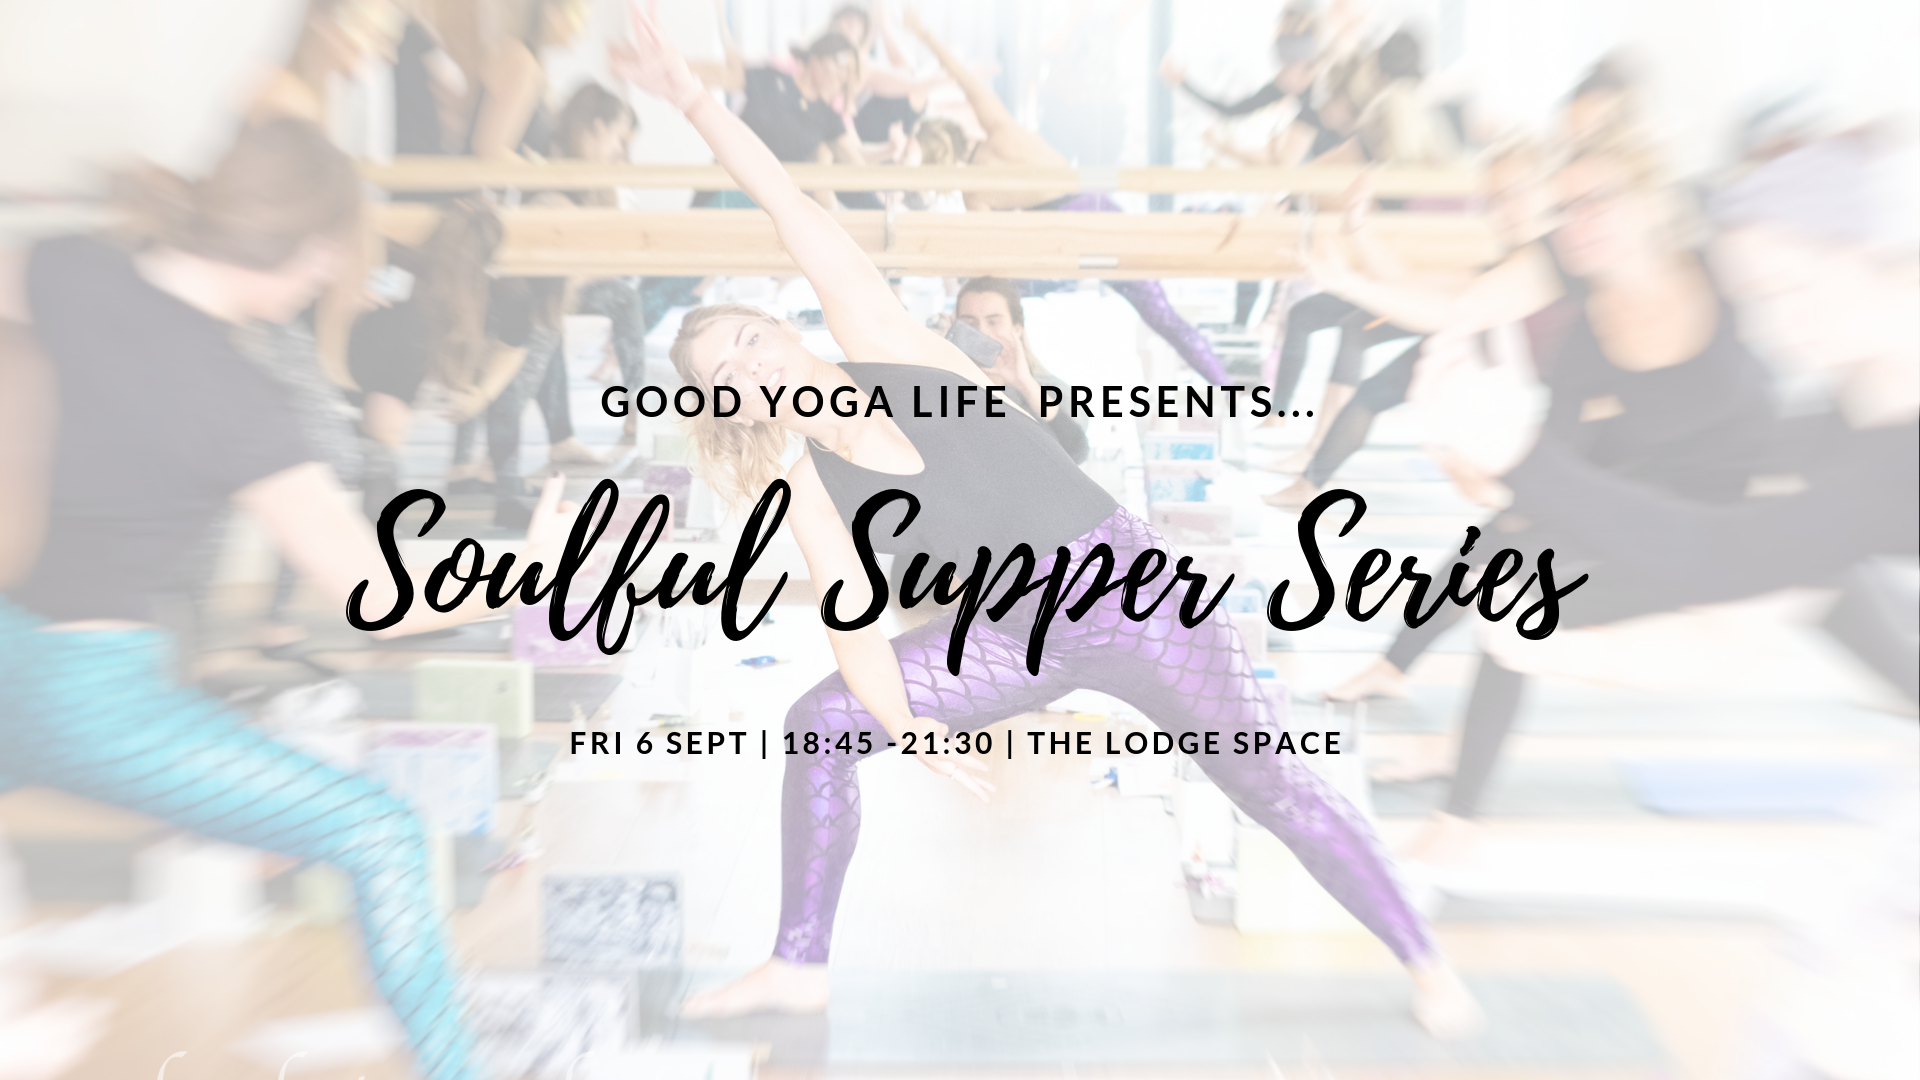 SOULFUL SUPPER SERIES